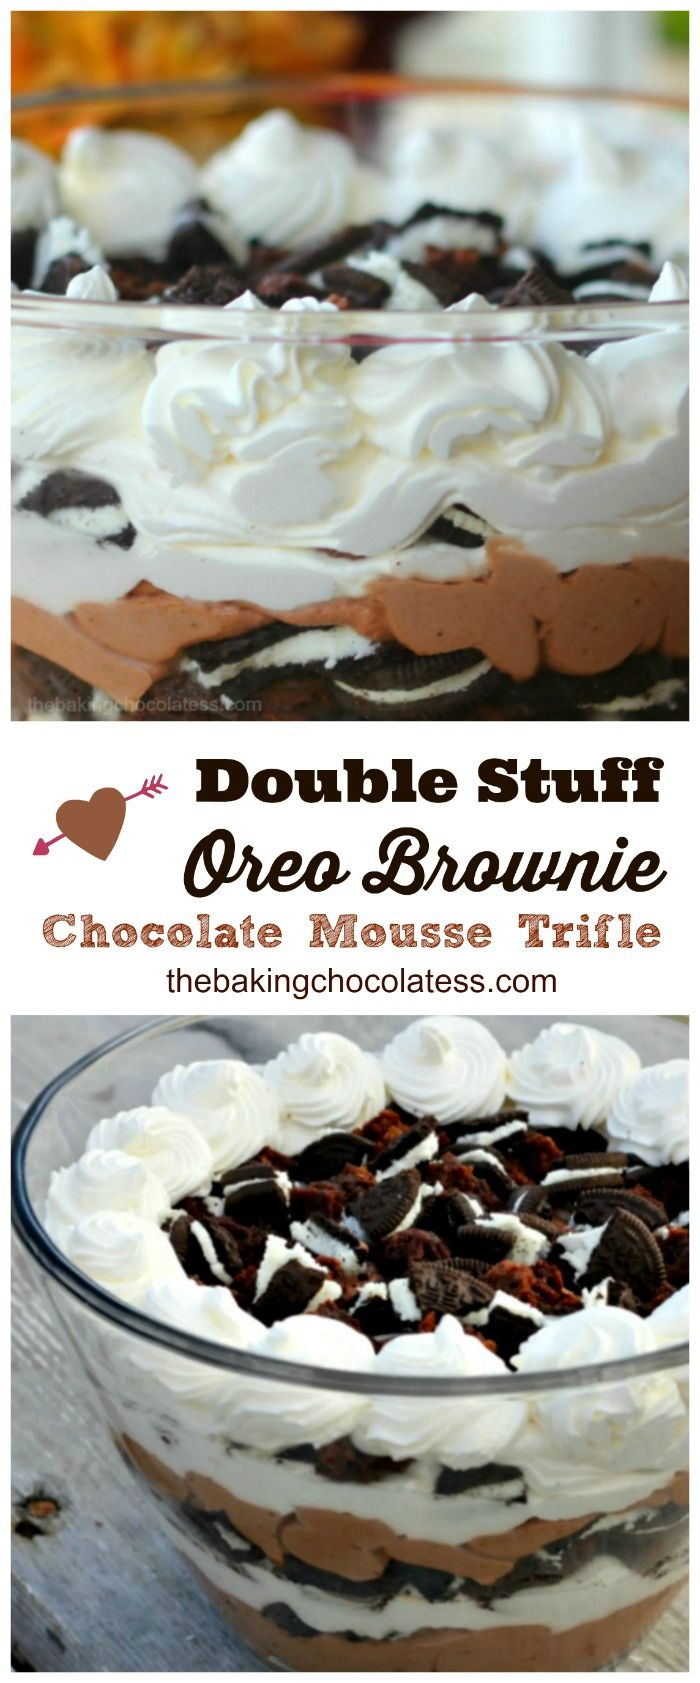 Double Stuff Oreo Brownie Chocolate Mousse Trifle